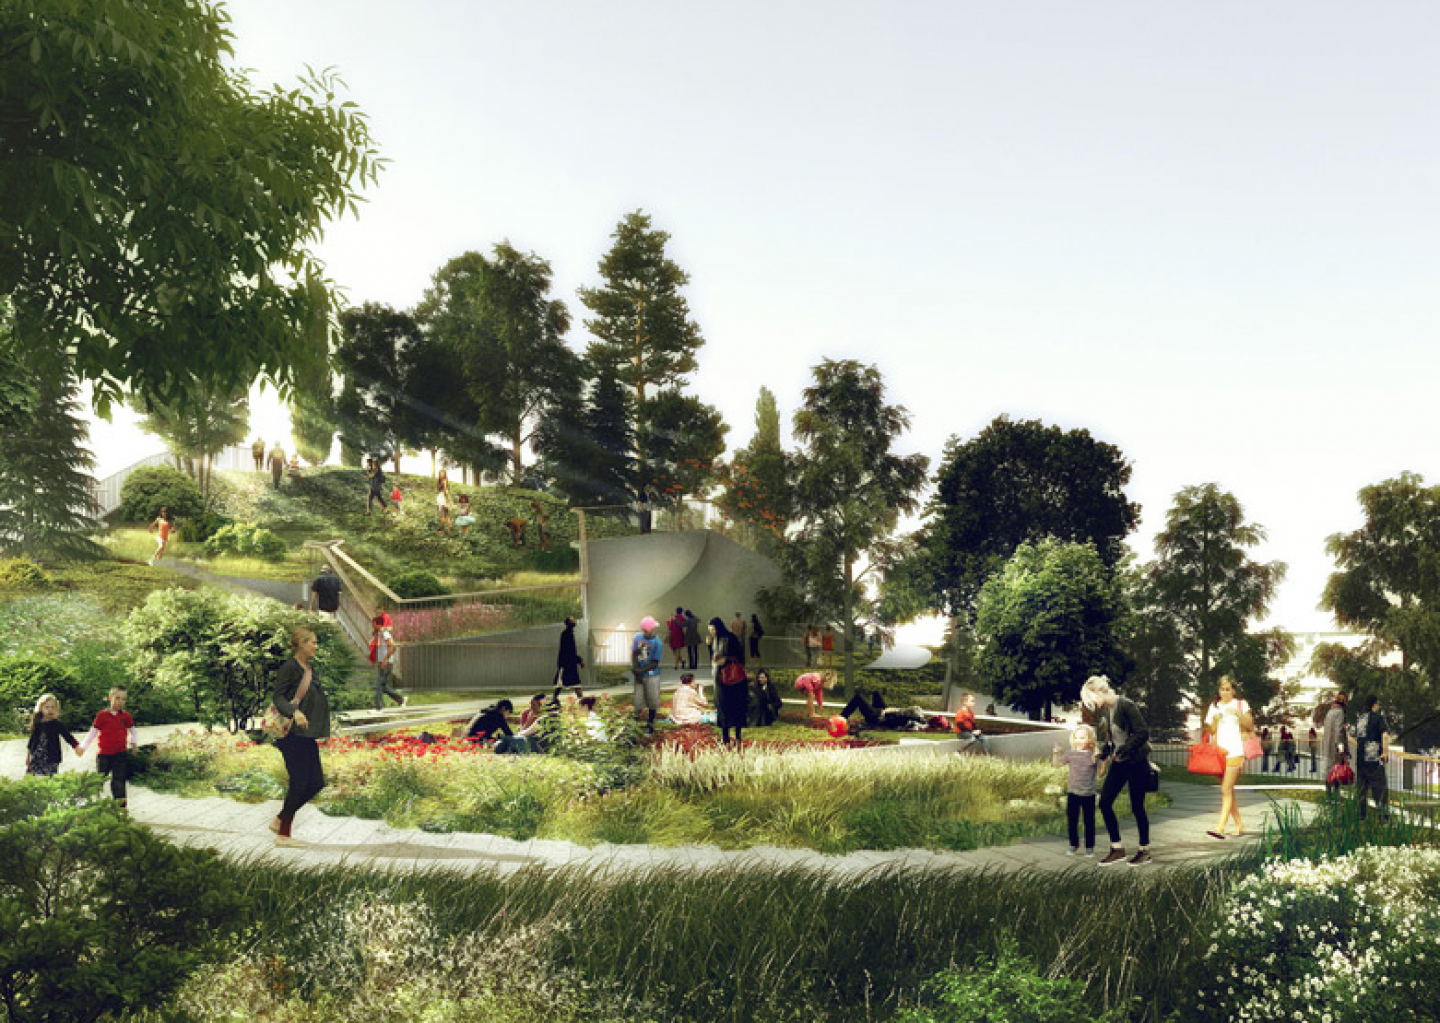 The oasis will showcase  and unexpected topography never before seen in New York City.